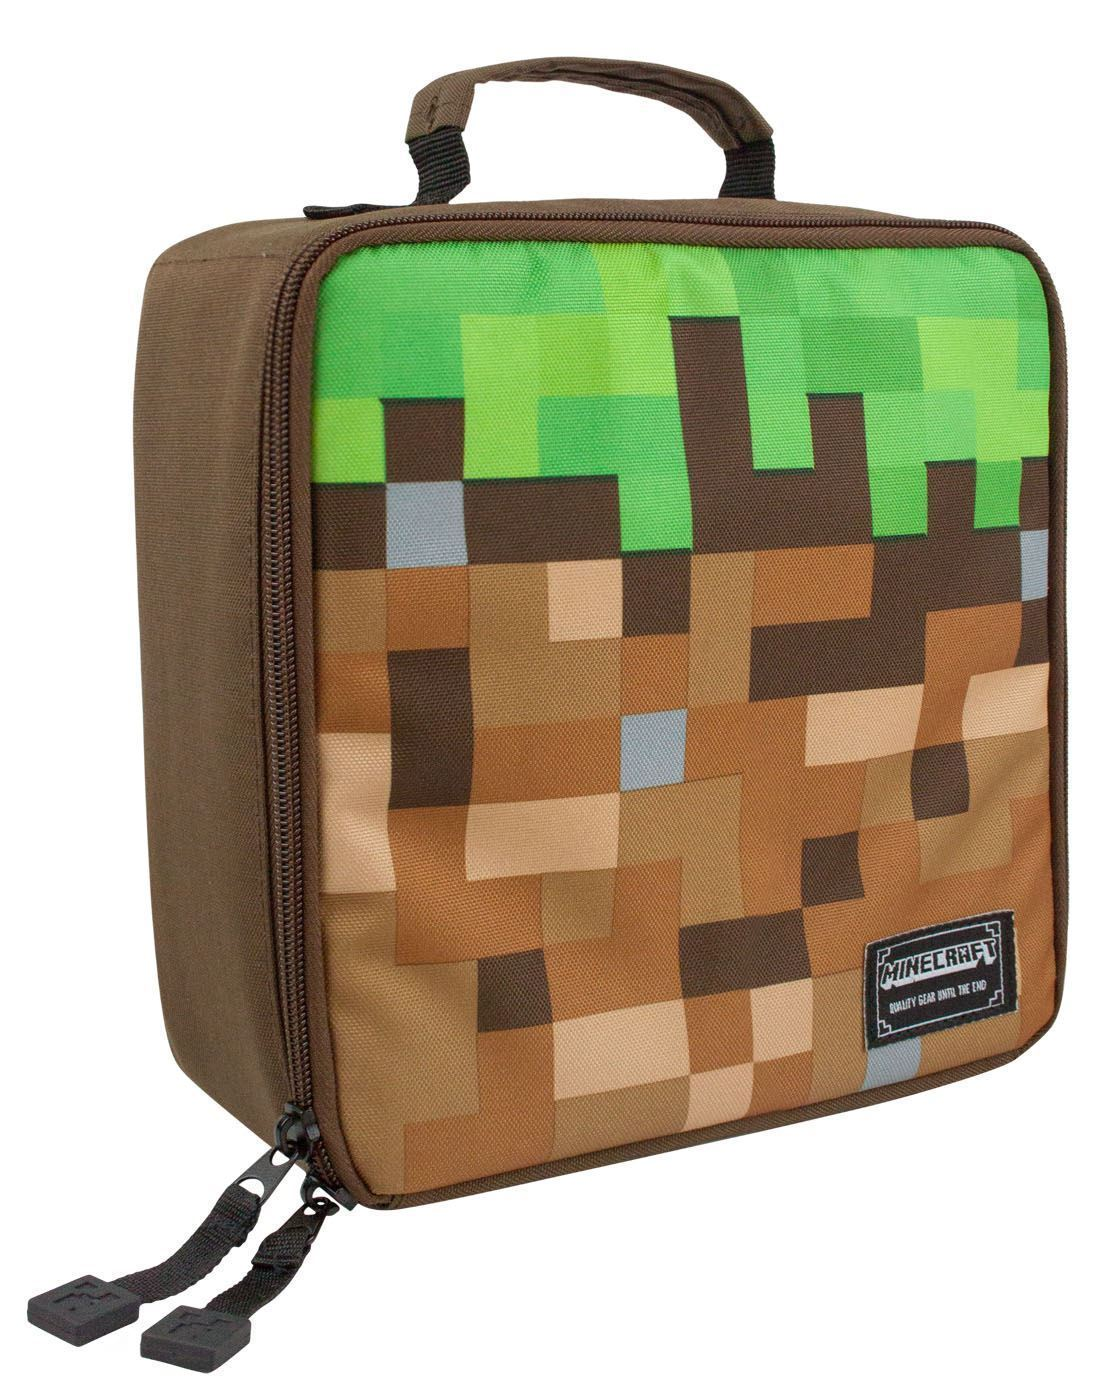 Minecraft Grass Block Lunch Box